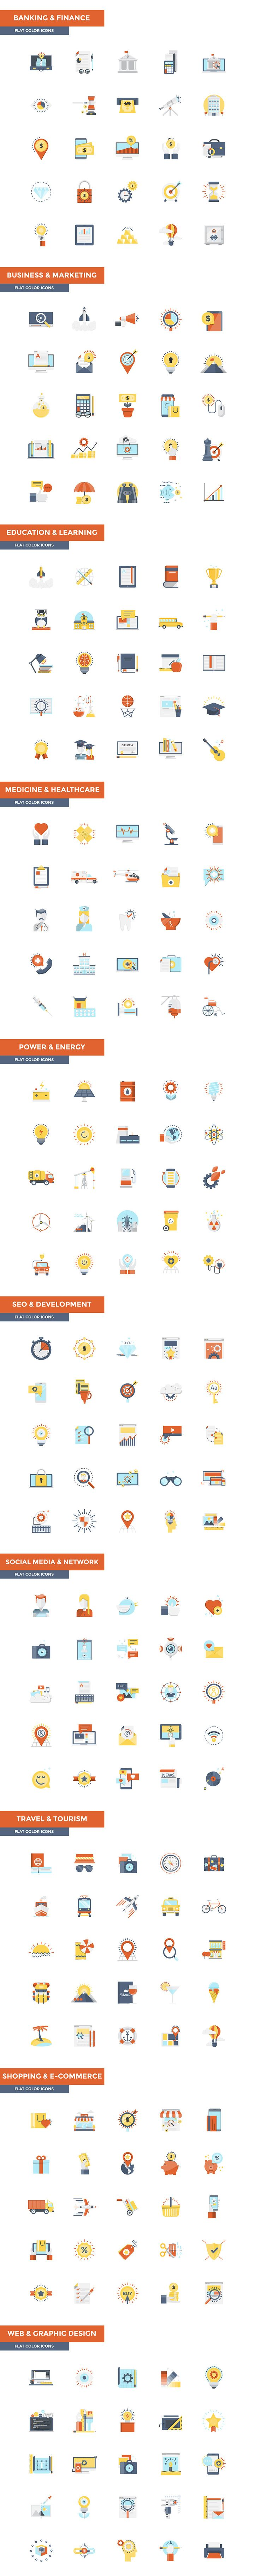 Set of modern Color Flat Design icons.Creative concepts and design elements for mobile and web applications. VectorCollection covers following themes :1. Banking and Finance2. Marketing and Business3. Seo and Development4. Education and Learning5.…